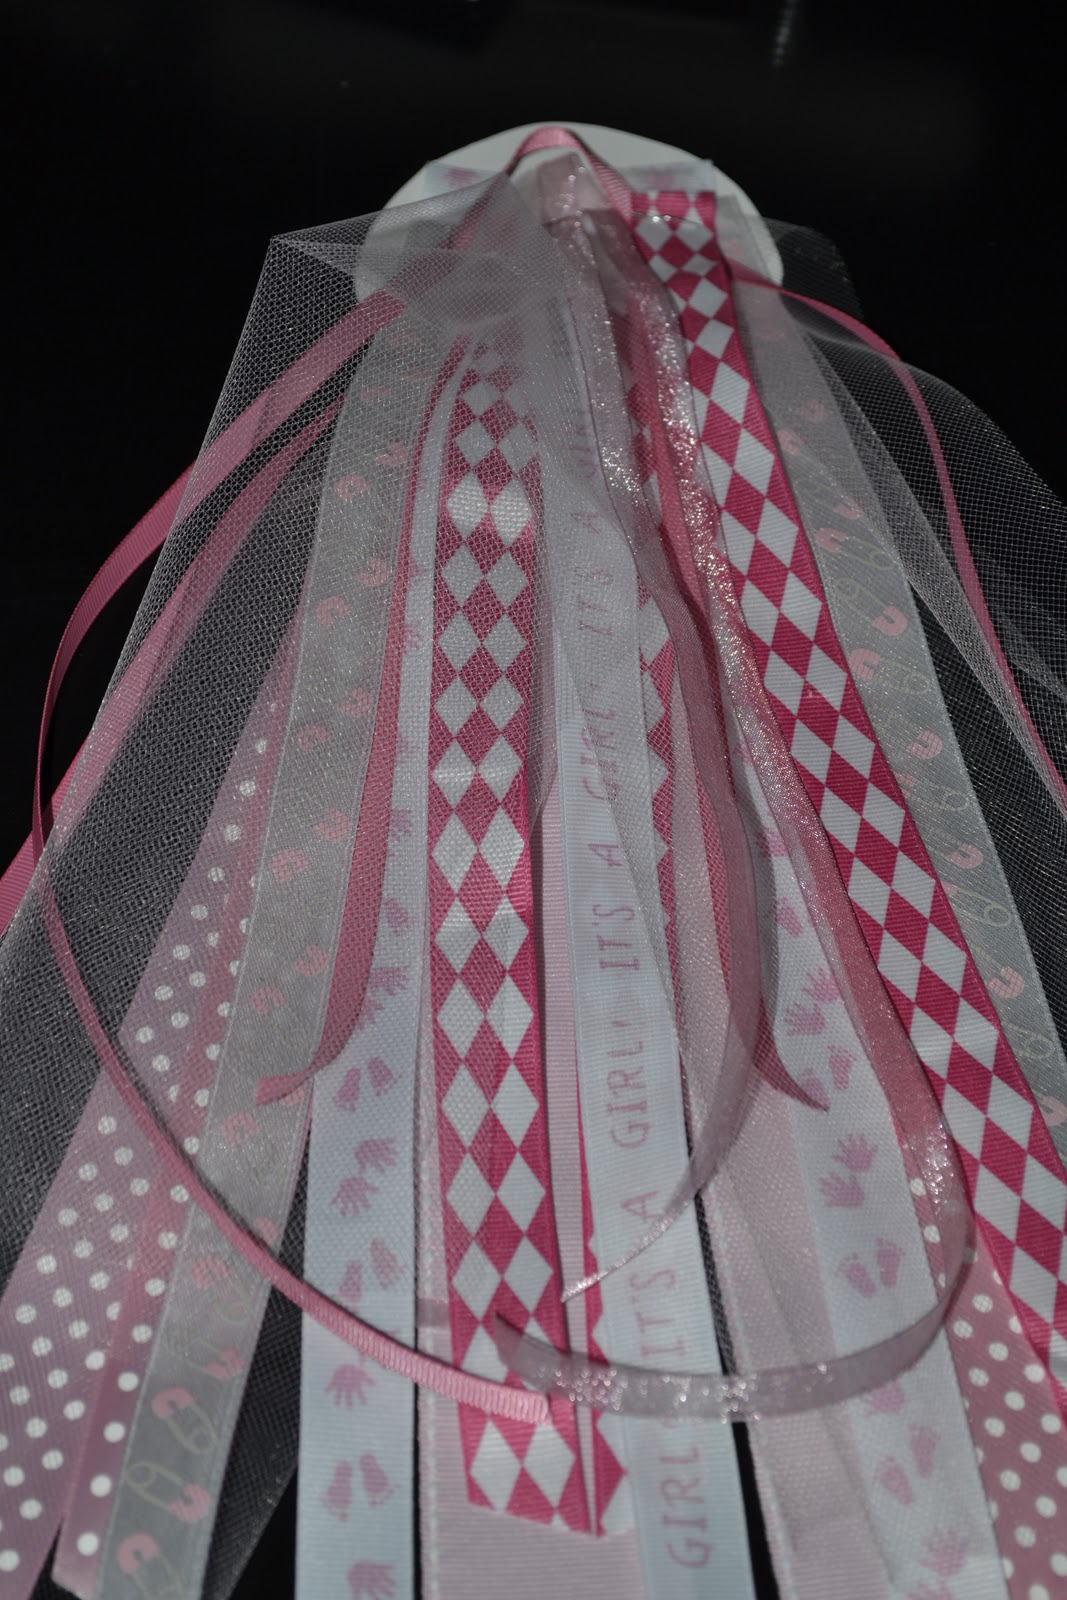 i did the widest ribbon first so that it would be in the back and just kept adding ribbons usually one on each side of the thick back ribbons